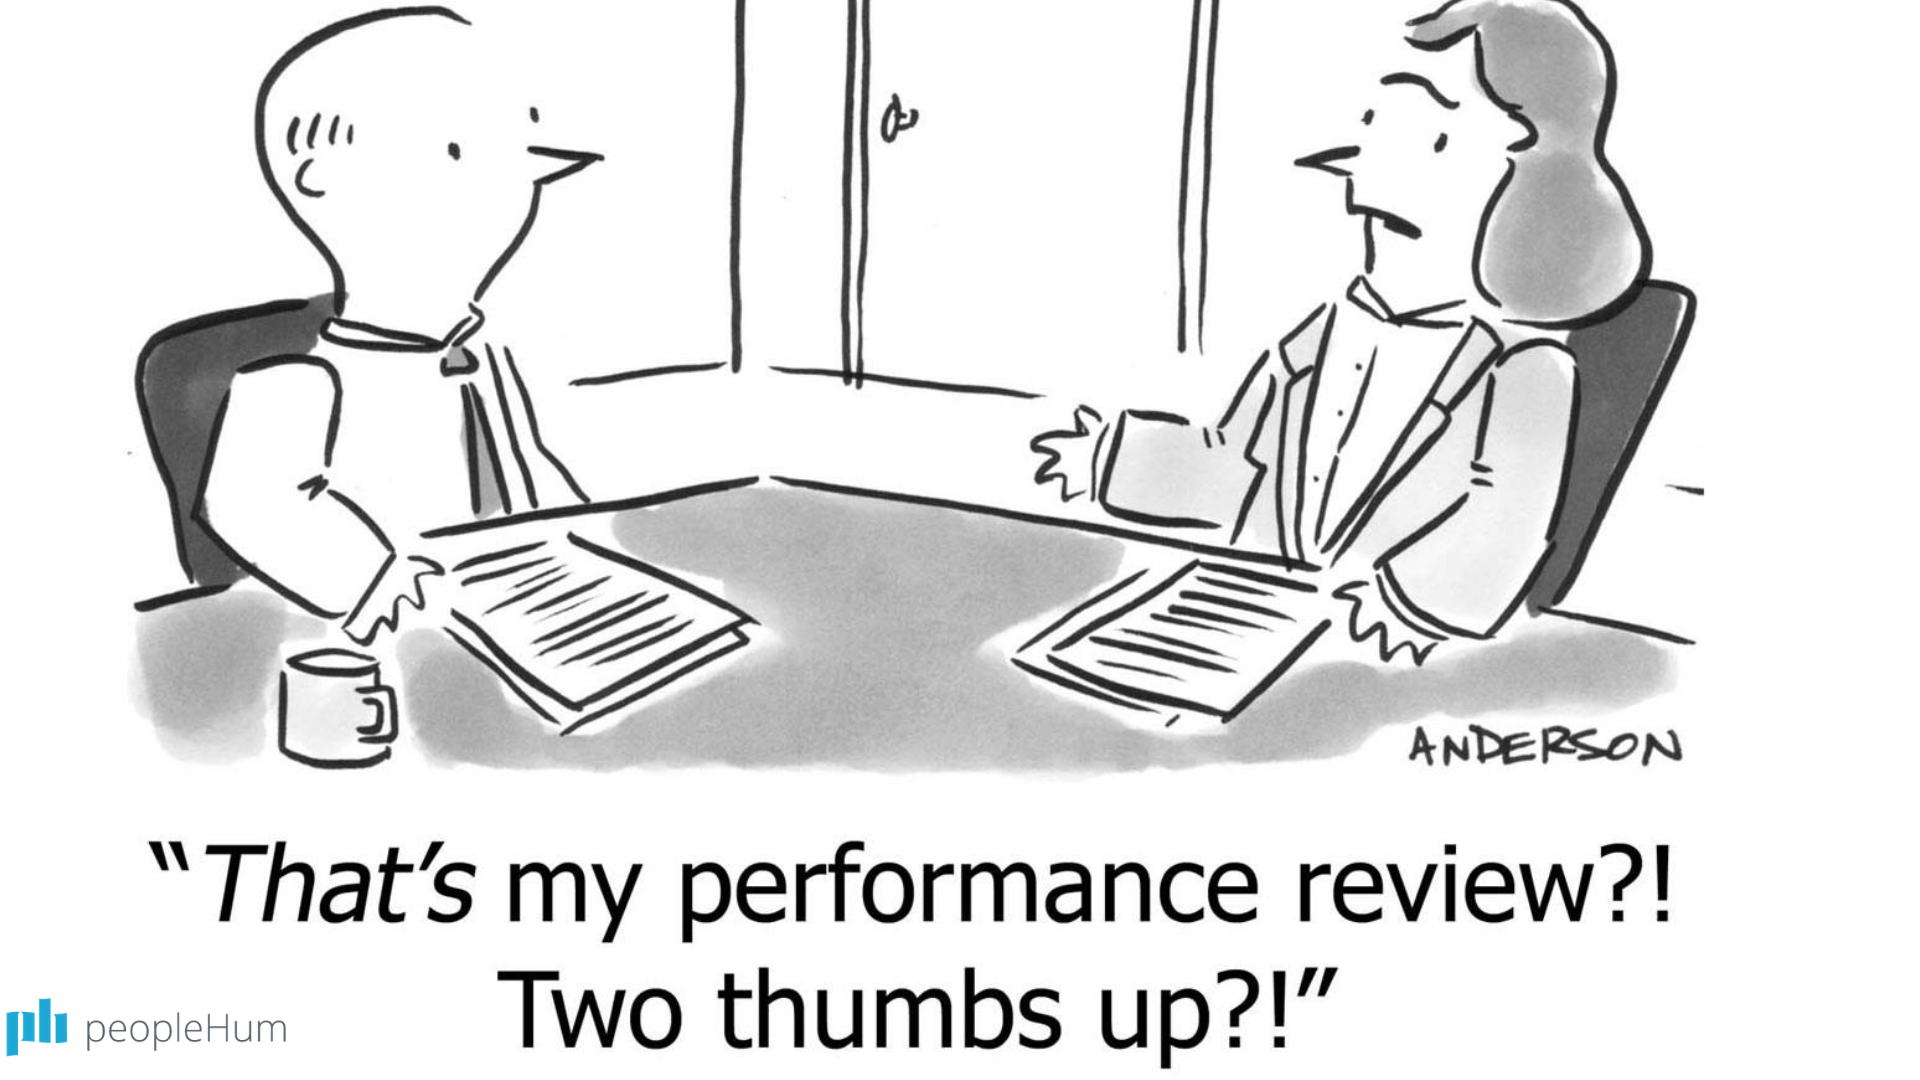 Performance Reviews - 5 mantras for managers to evaluate